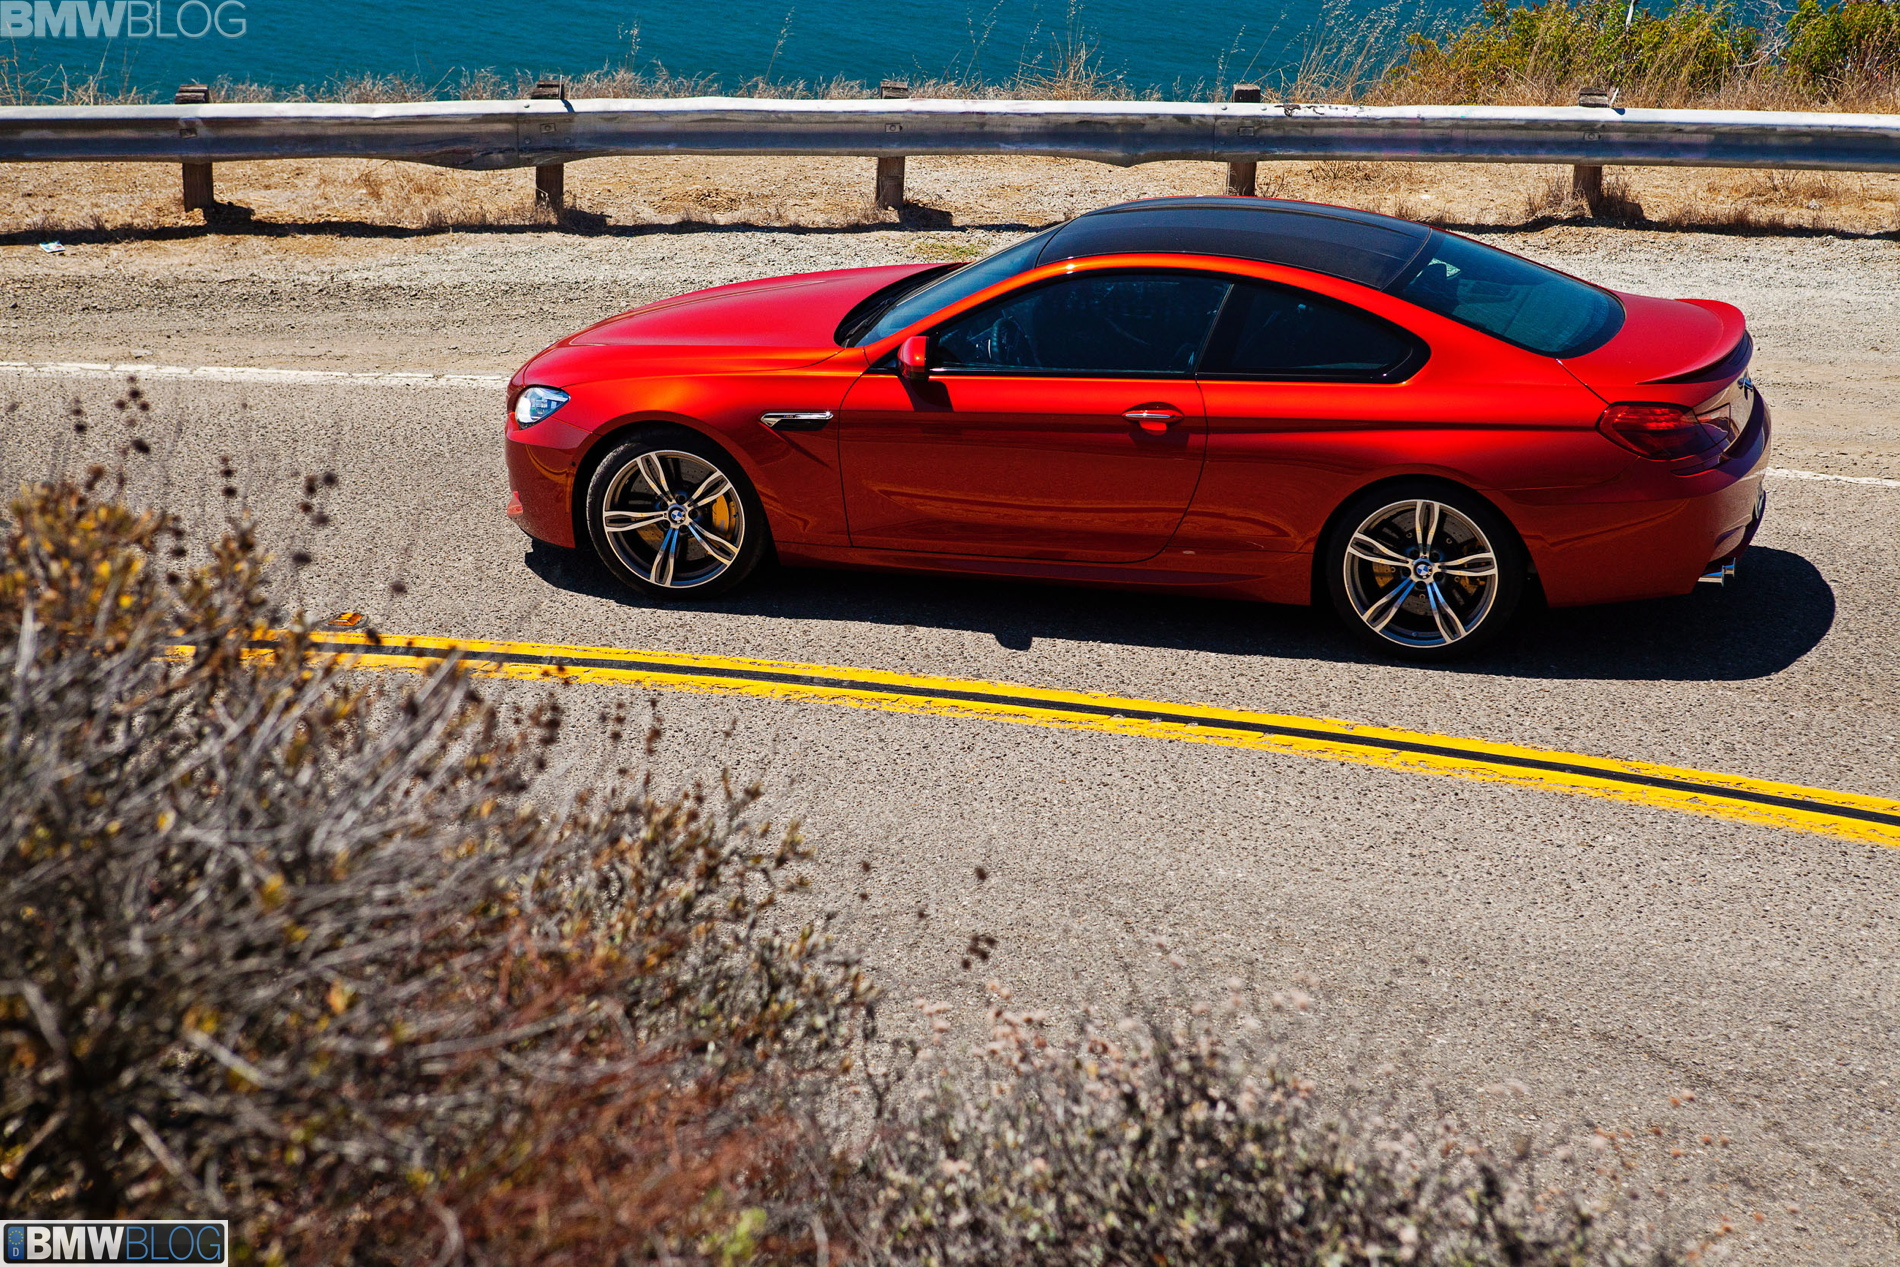 Next Generation G15 Bmw 6 Series Will Be Lighter And Sportier